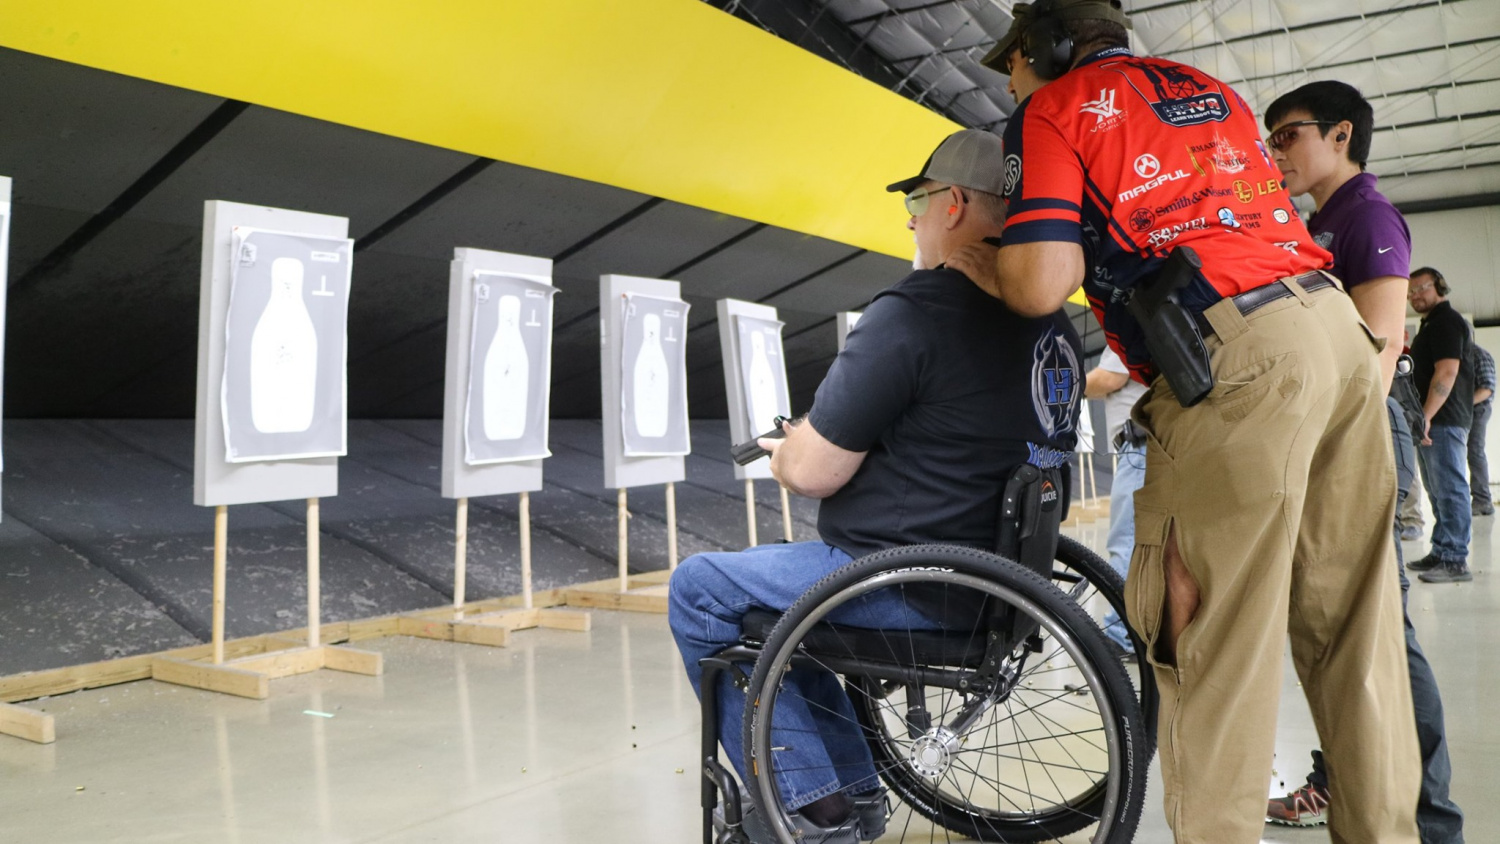 Decreased mobility doesn't stop passionate adaptive shooters.